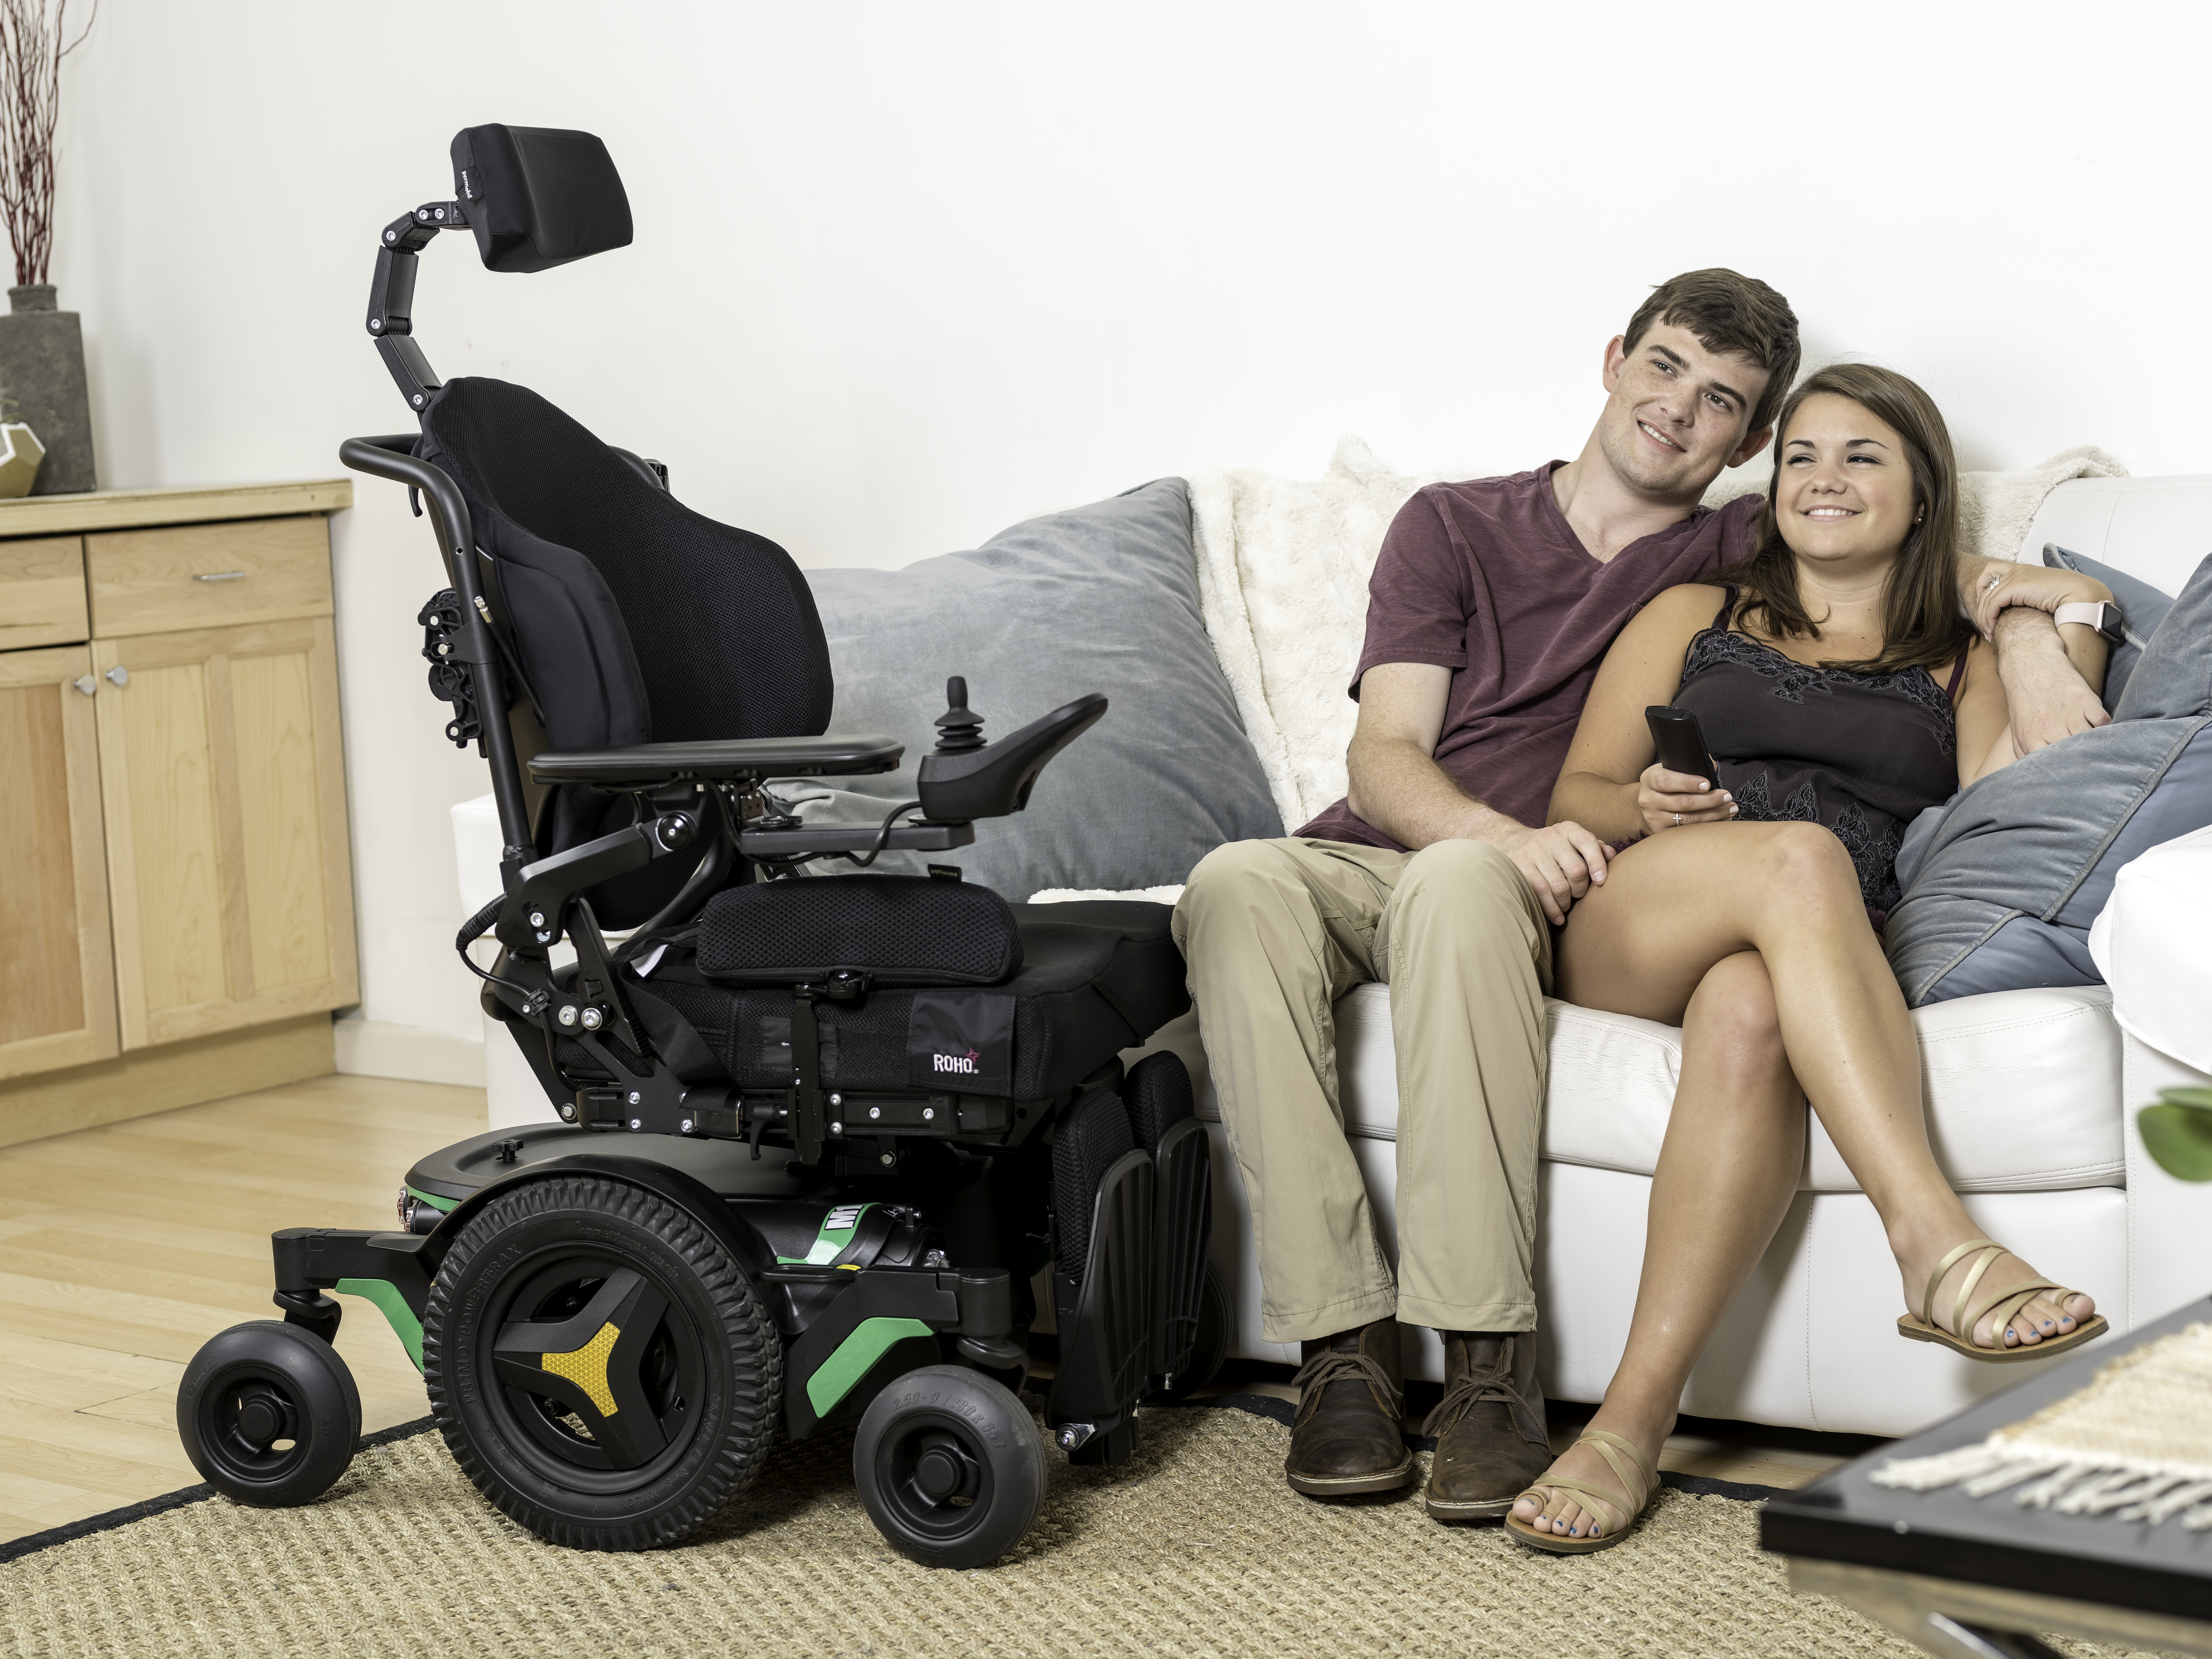 A couple sitting on sofa beside the power wheelchair.